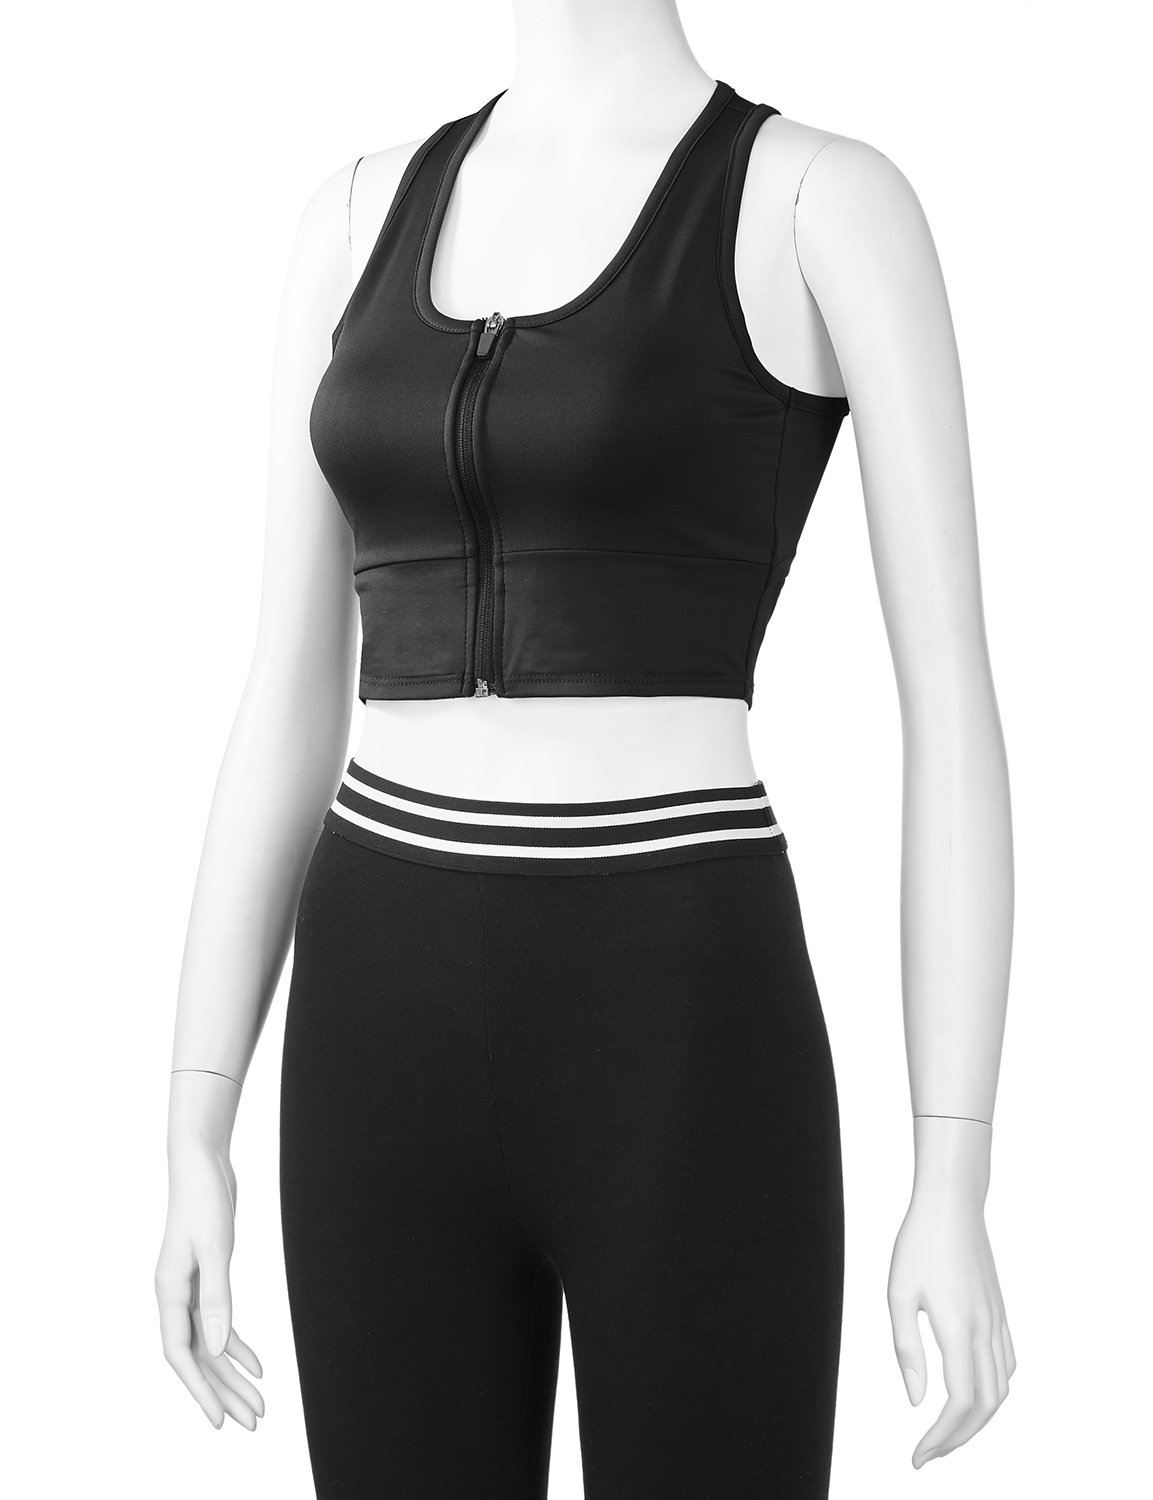 REGNA X Women Racerback Sports Bras Seamless High Support Bra for Gym Black L by Regna X (Image #6)